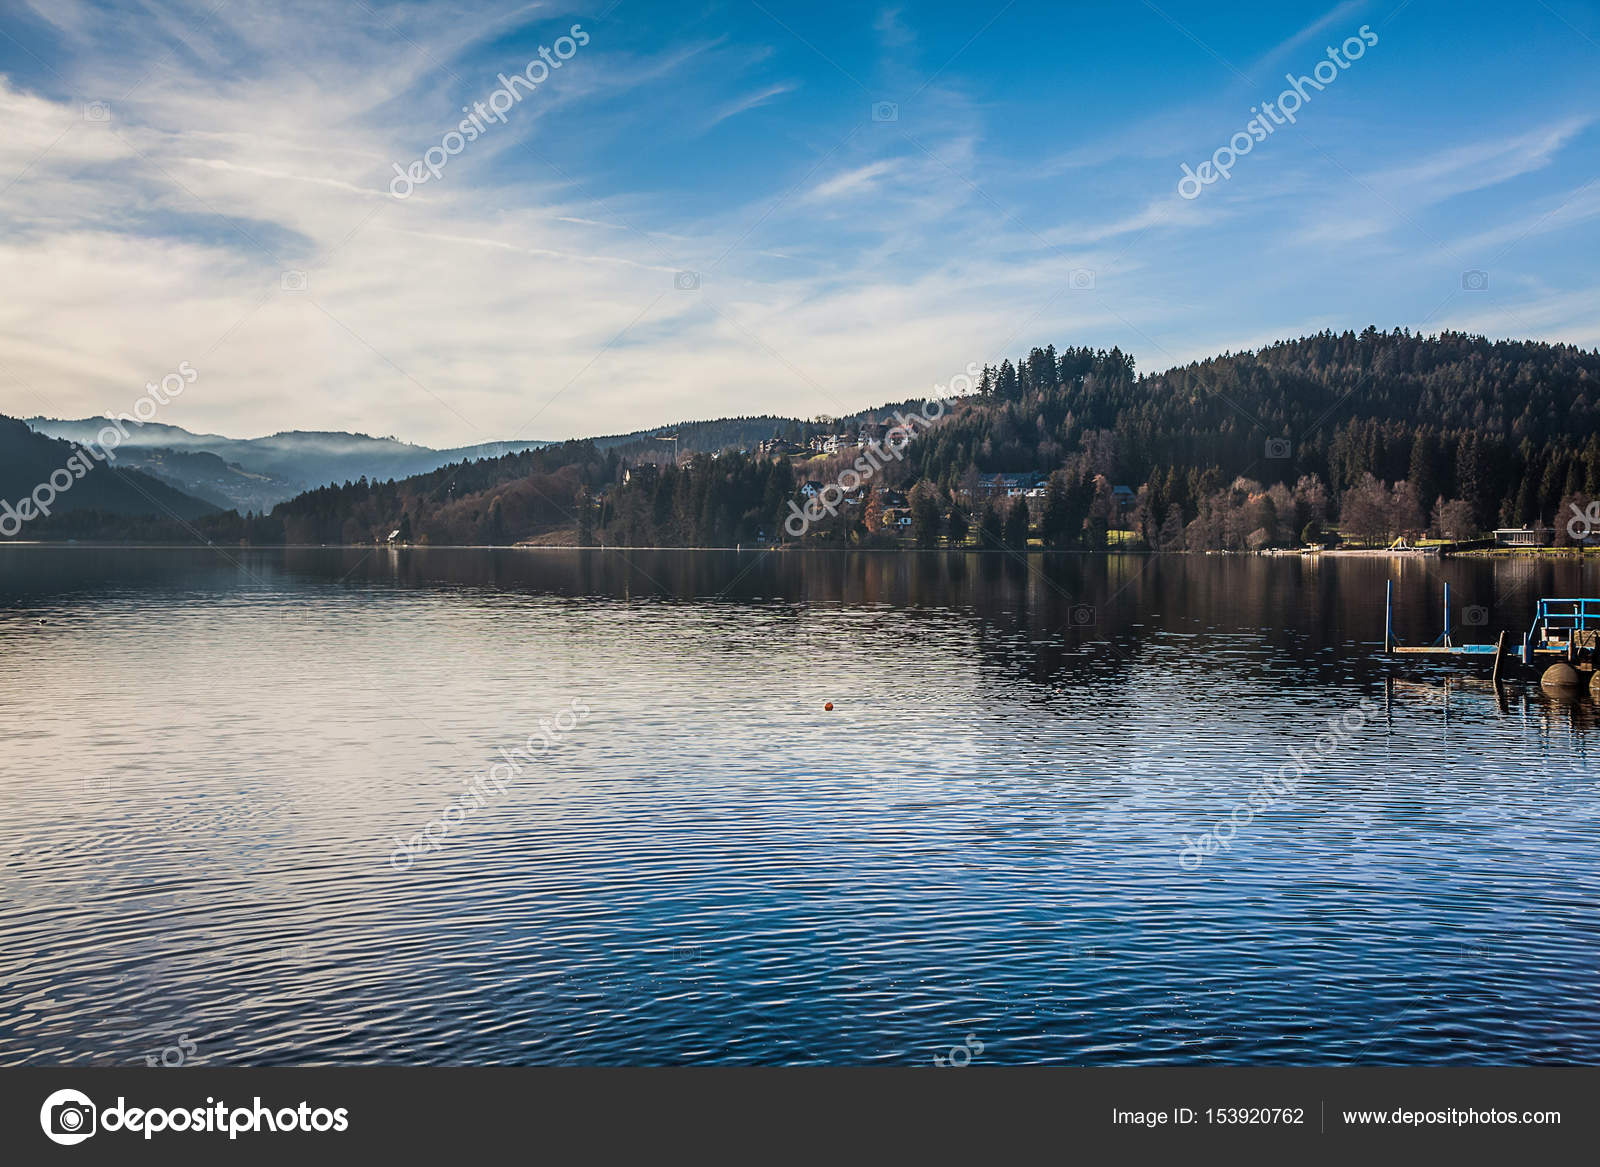 Lake Titisee Black Forest In Germany Stock Photo C Keongdagreat 153920762